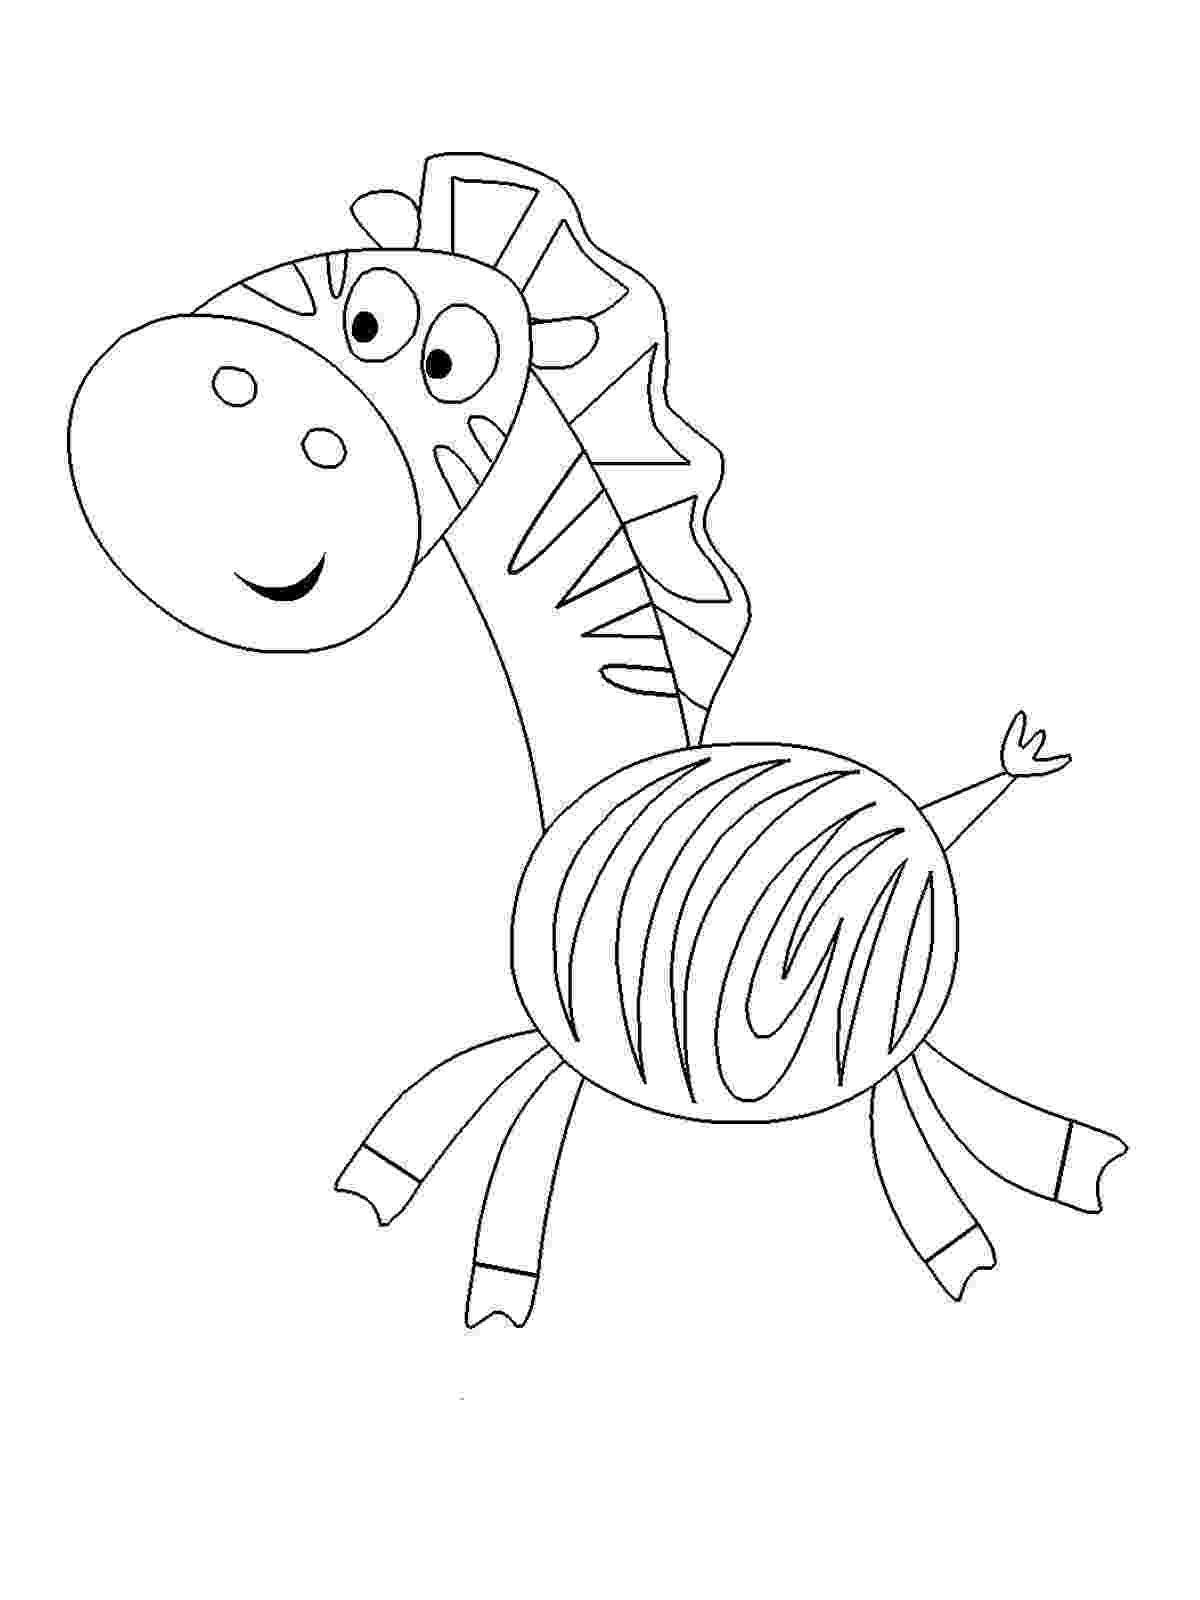 printable coloring pages of animals adult coloring book printable coloring pages coloring animals printable of coloring pages